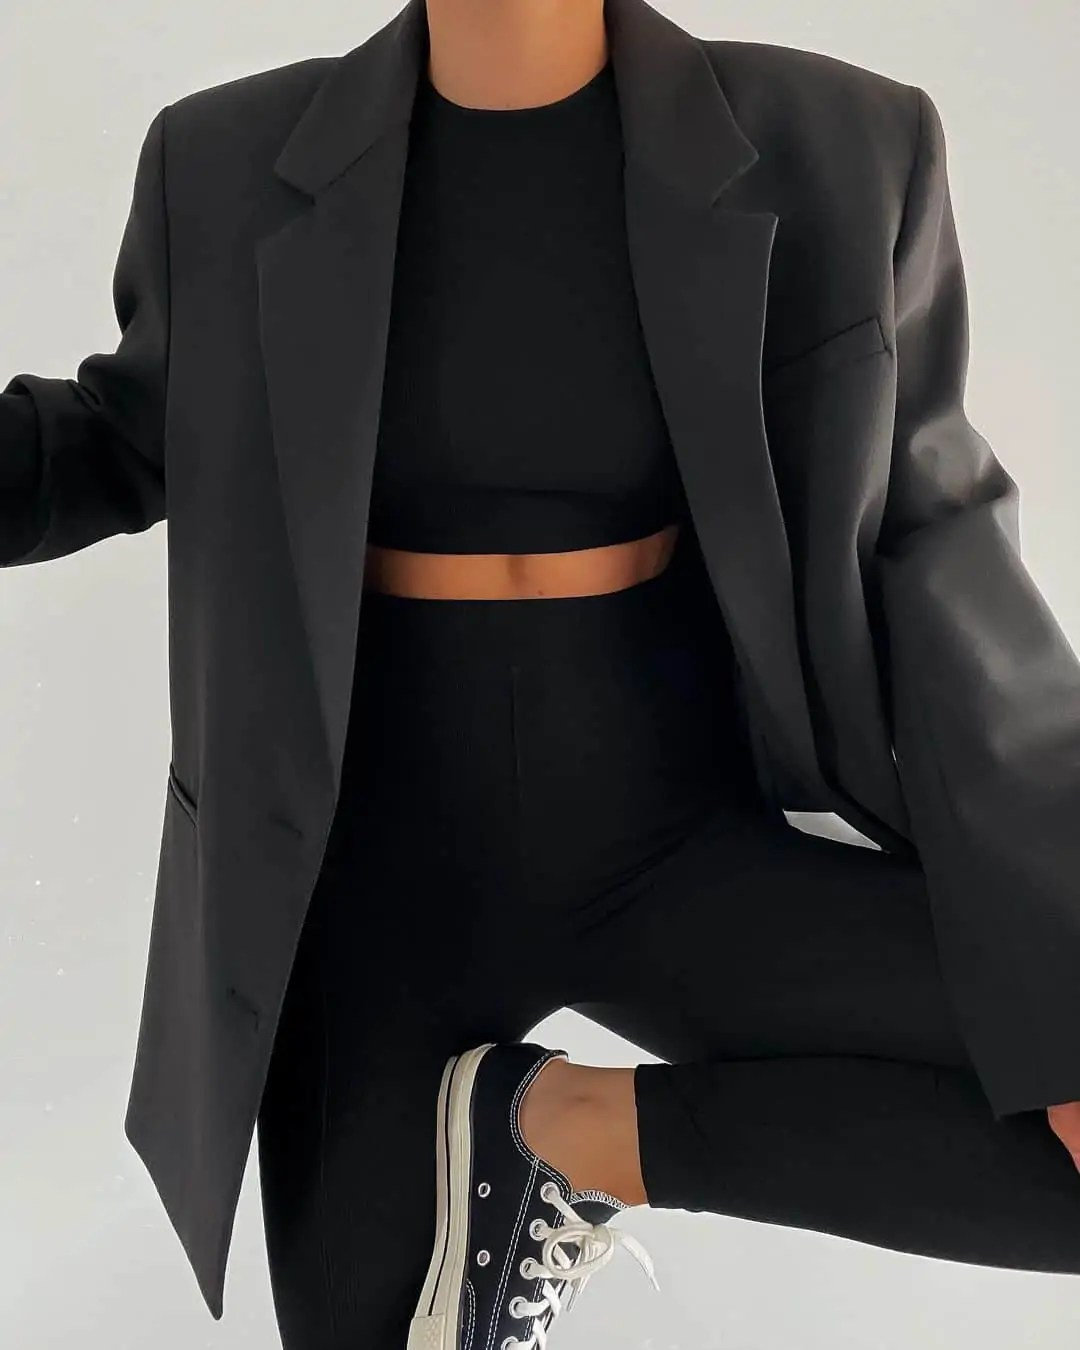 100+ Outfits to Inspire your next shopping haul 177